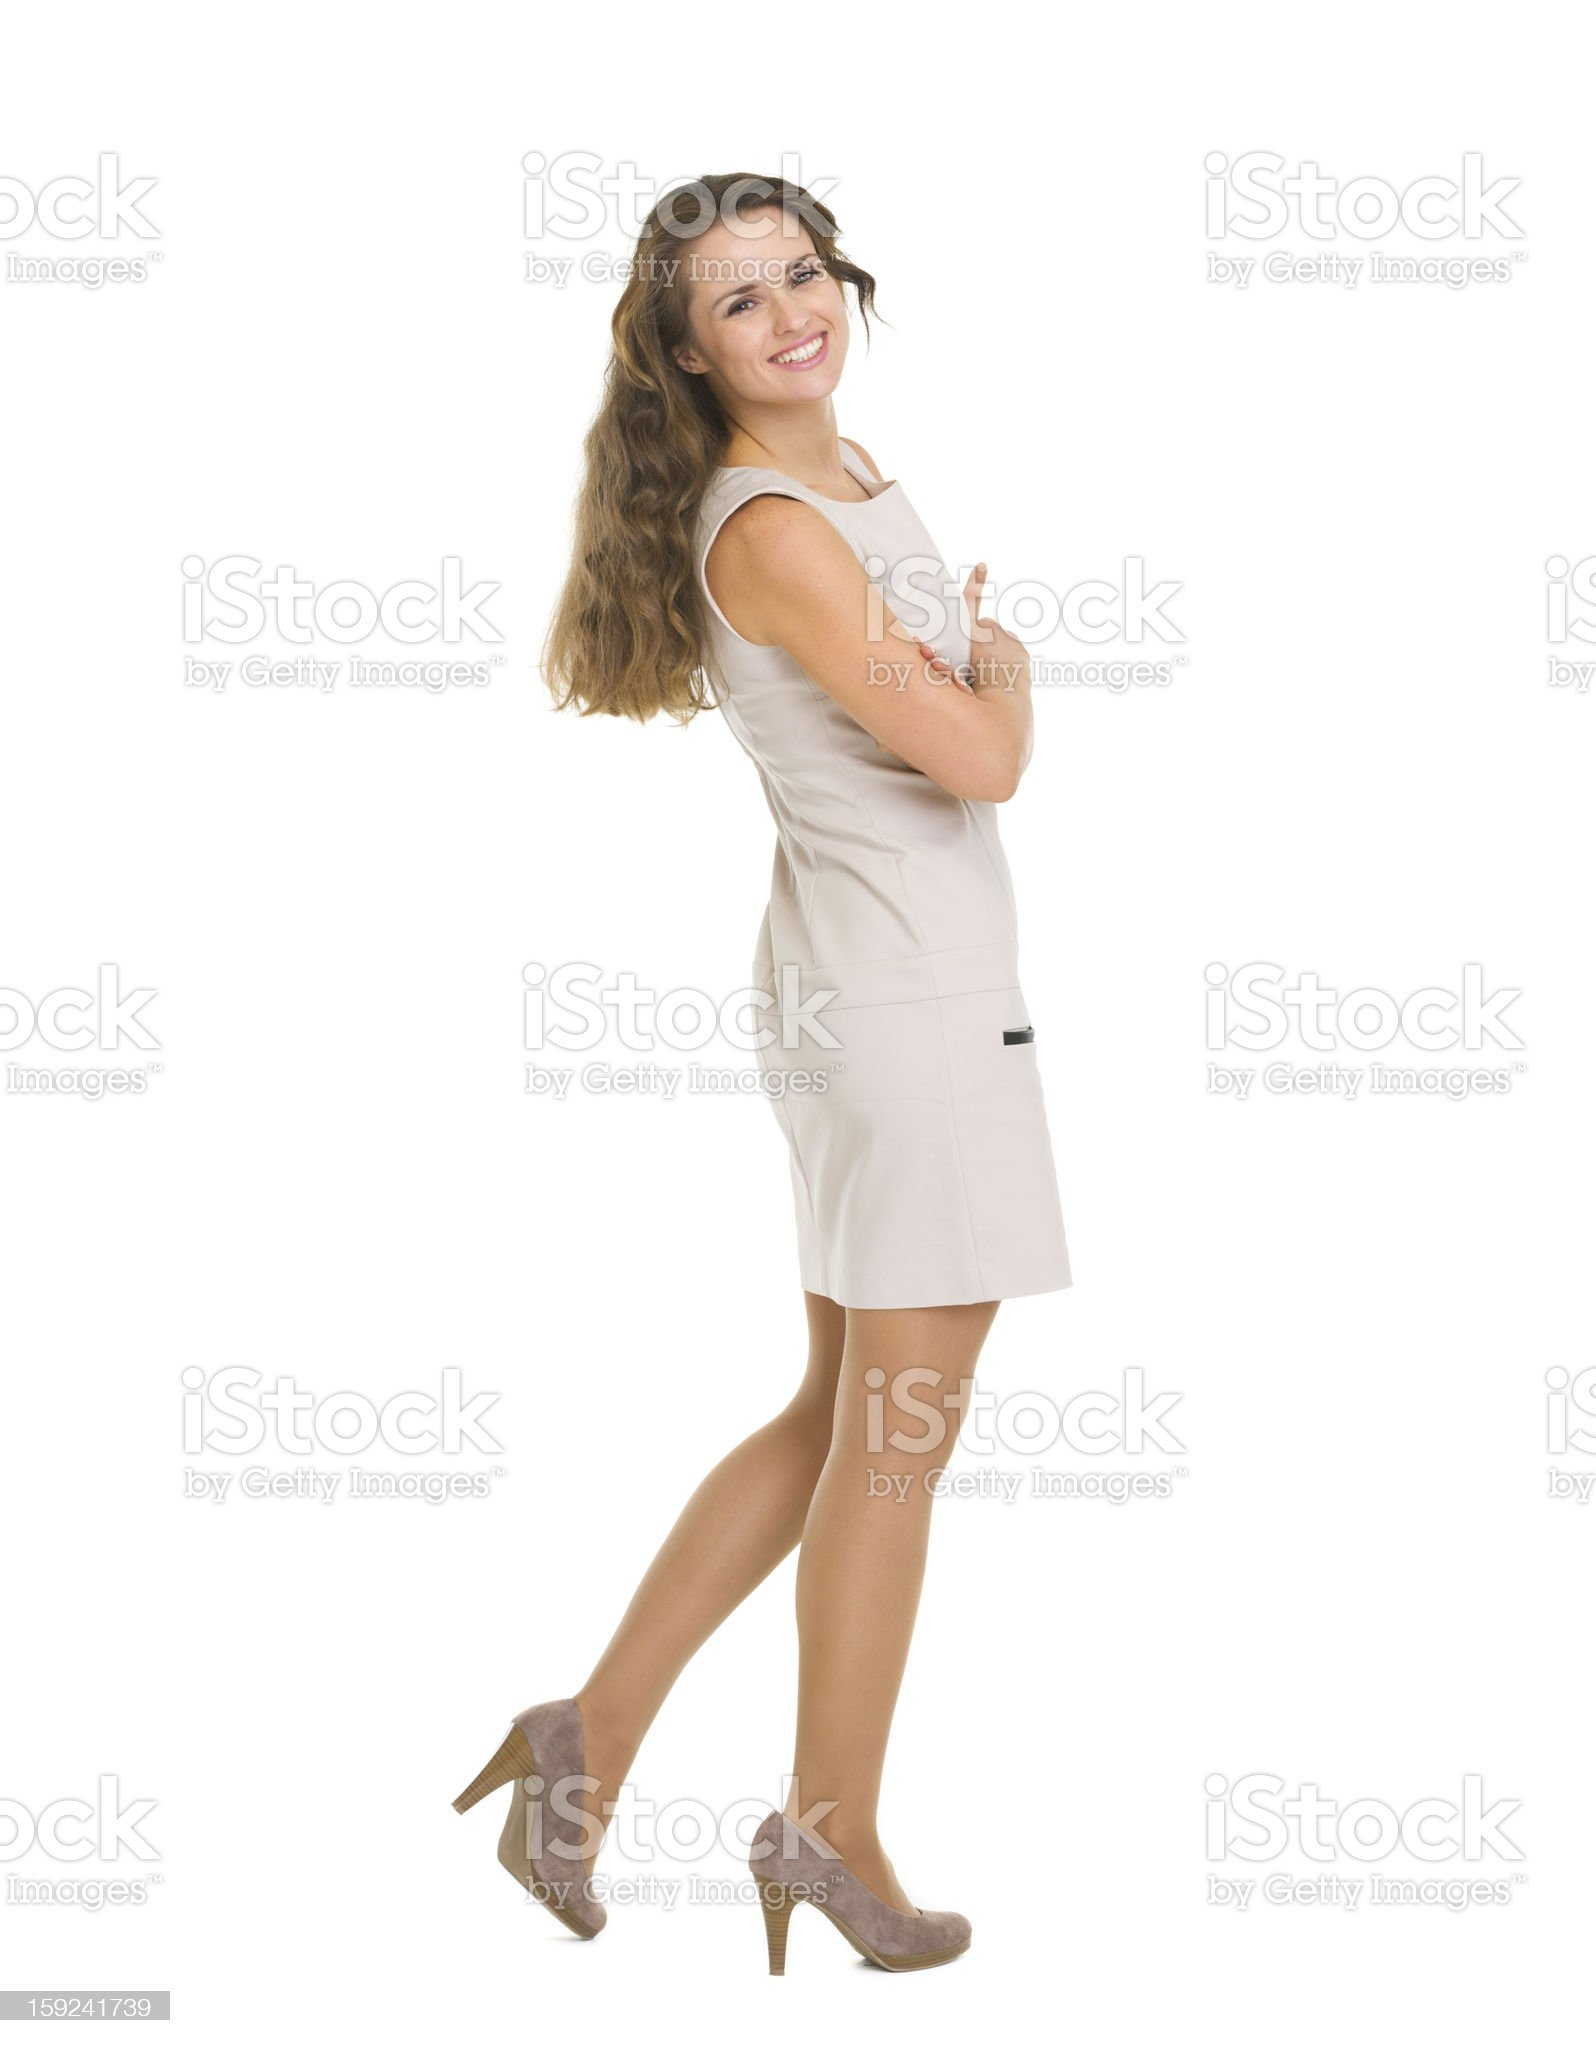 Full length portrait of smiling young woman in dress royalty-free stock photo